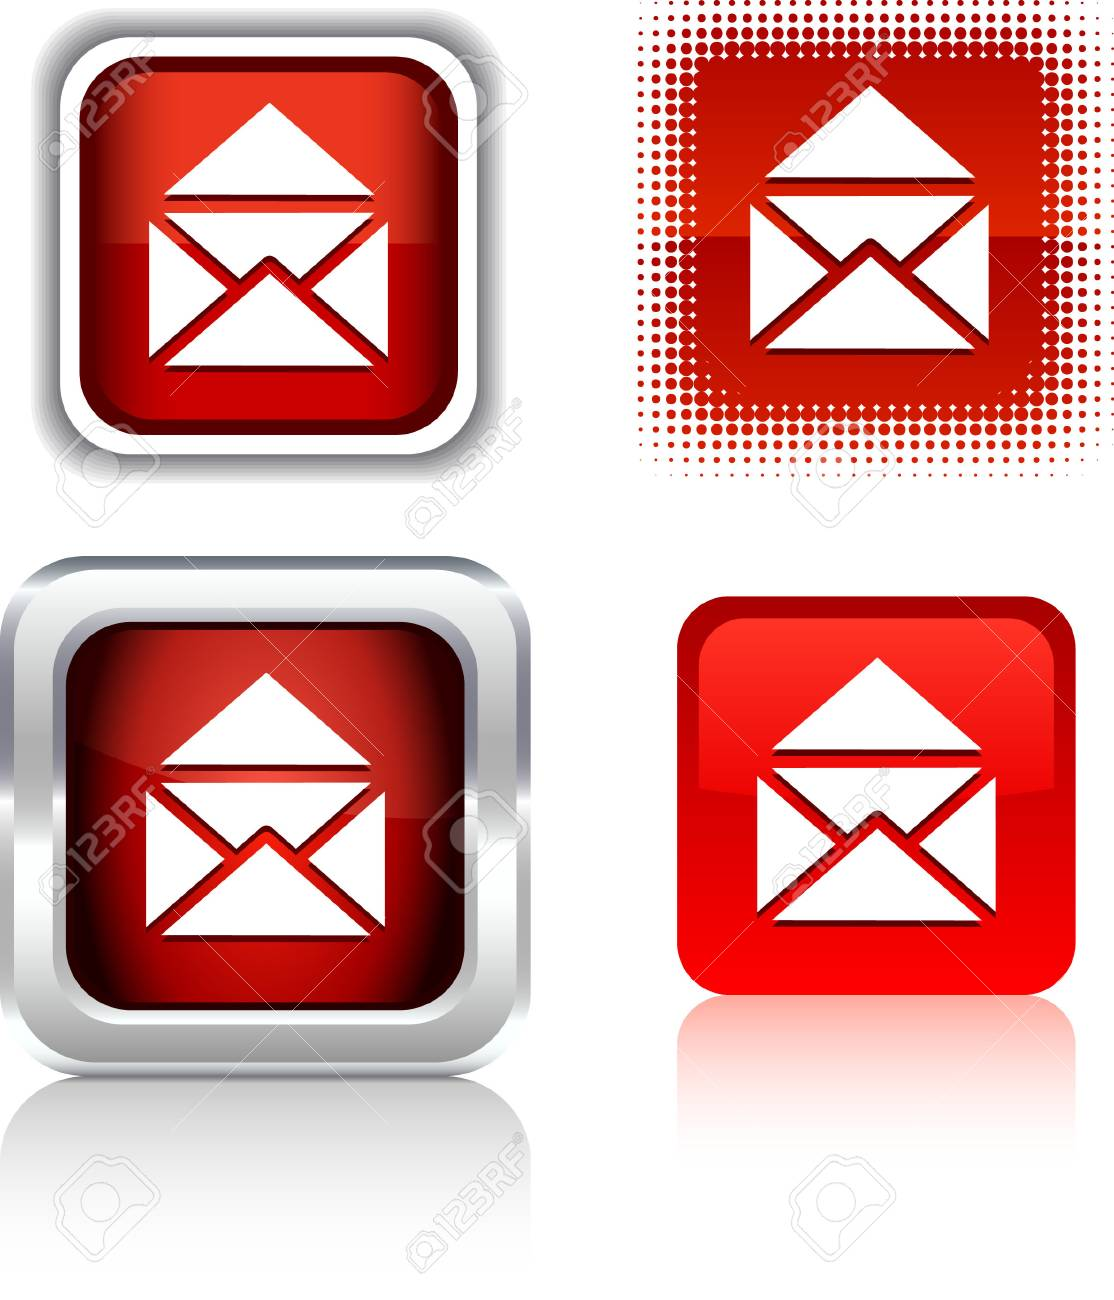 e-mail  square buttons. Vector illustration. Stock Vector - 6086022